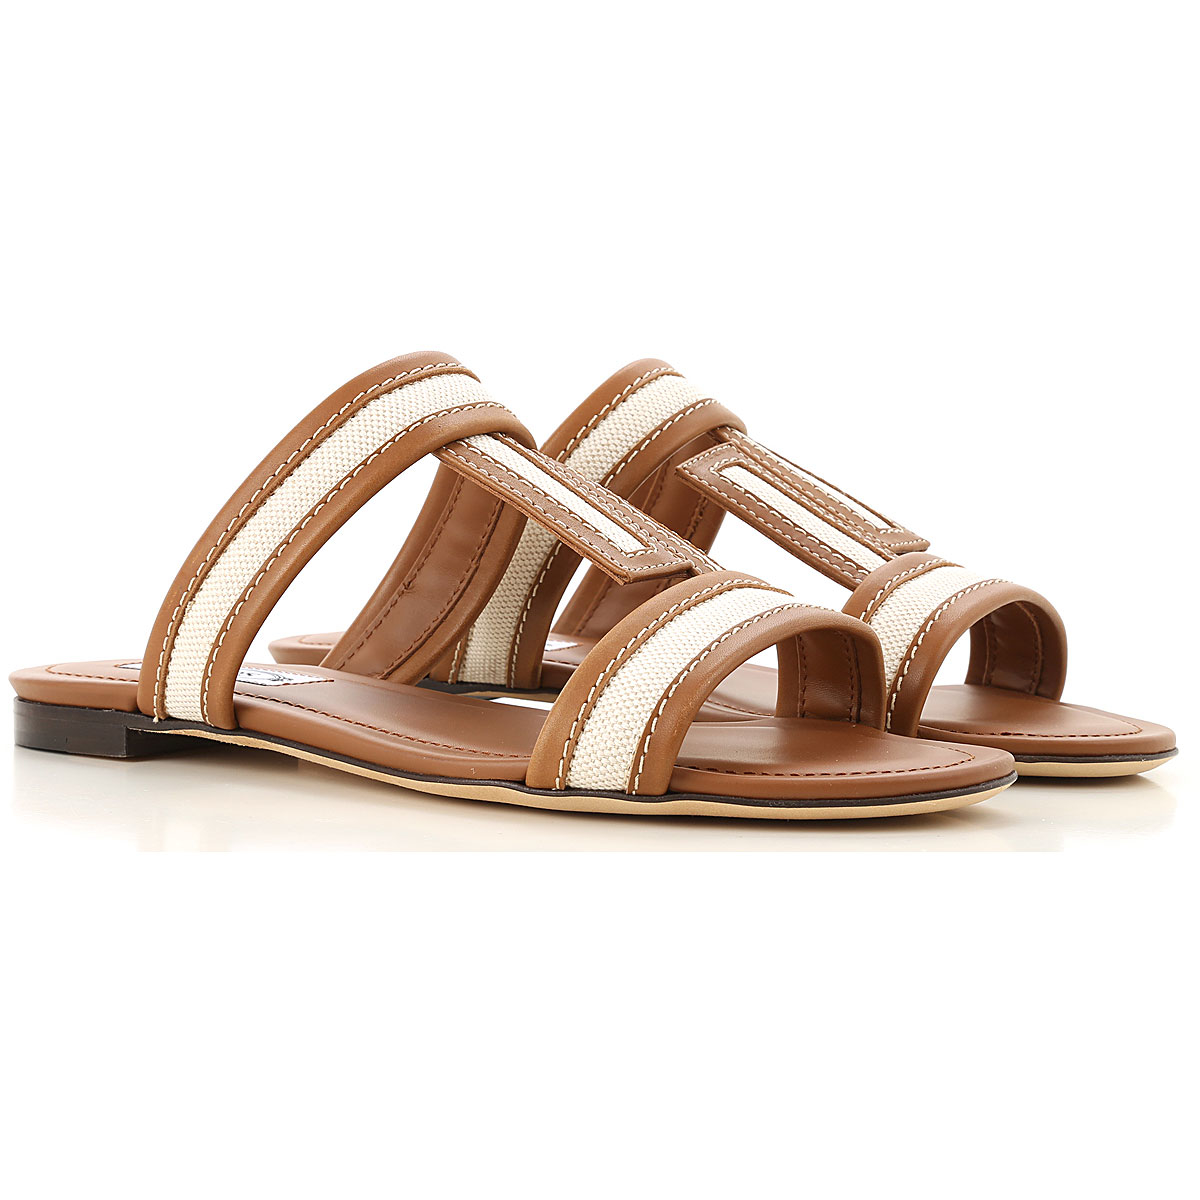 Tods Sandals for Women Leather UK - GOOFASH